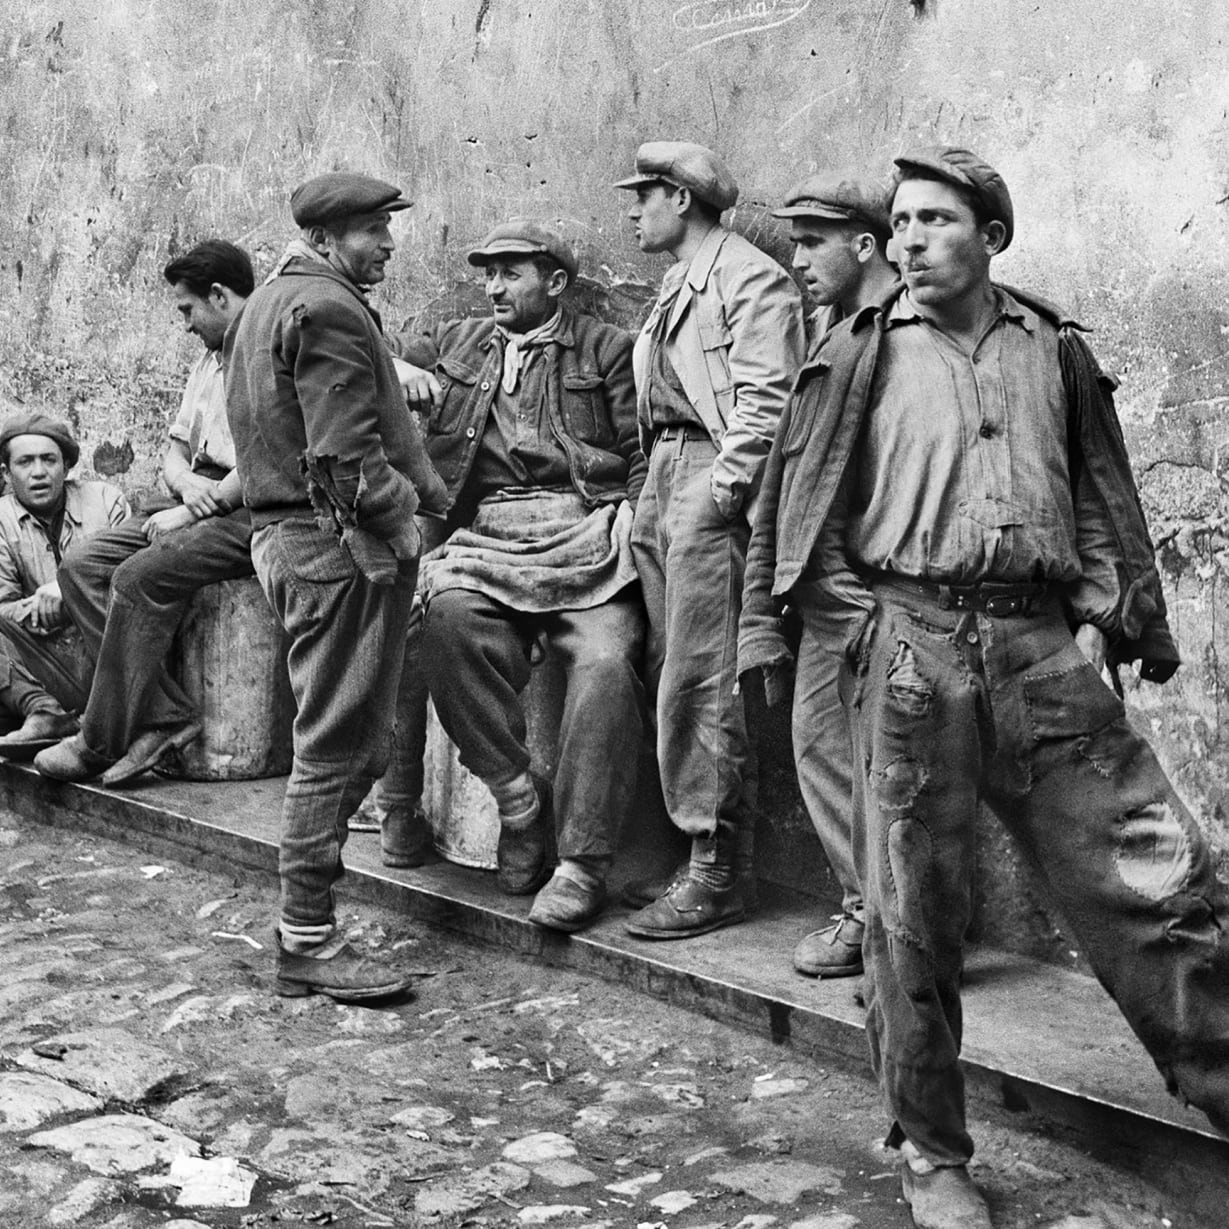 A vintage photograph of workmen standing and sitting by a wall.